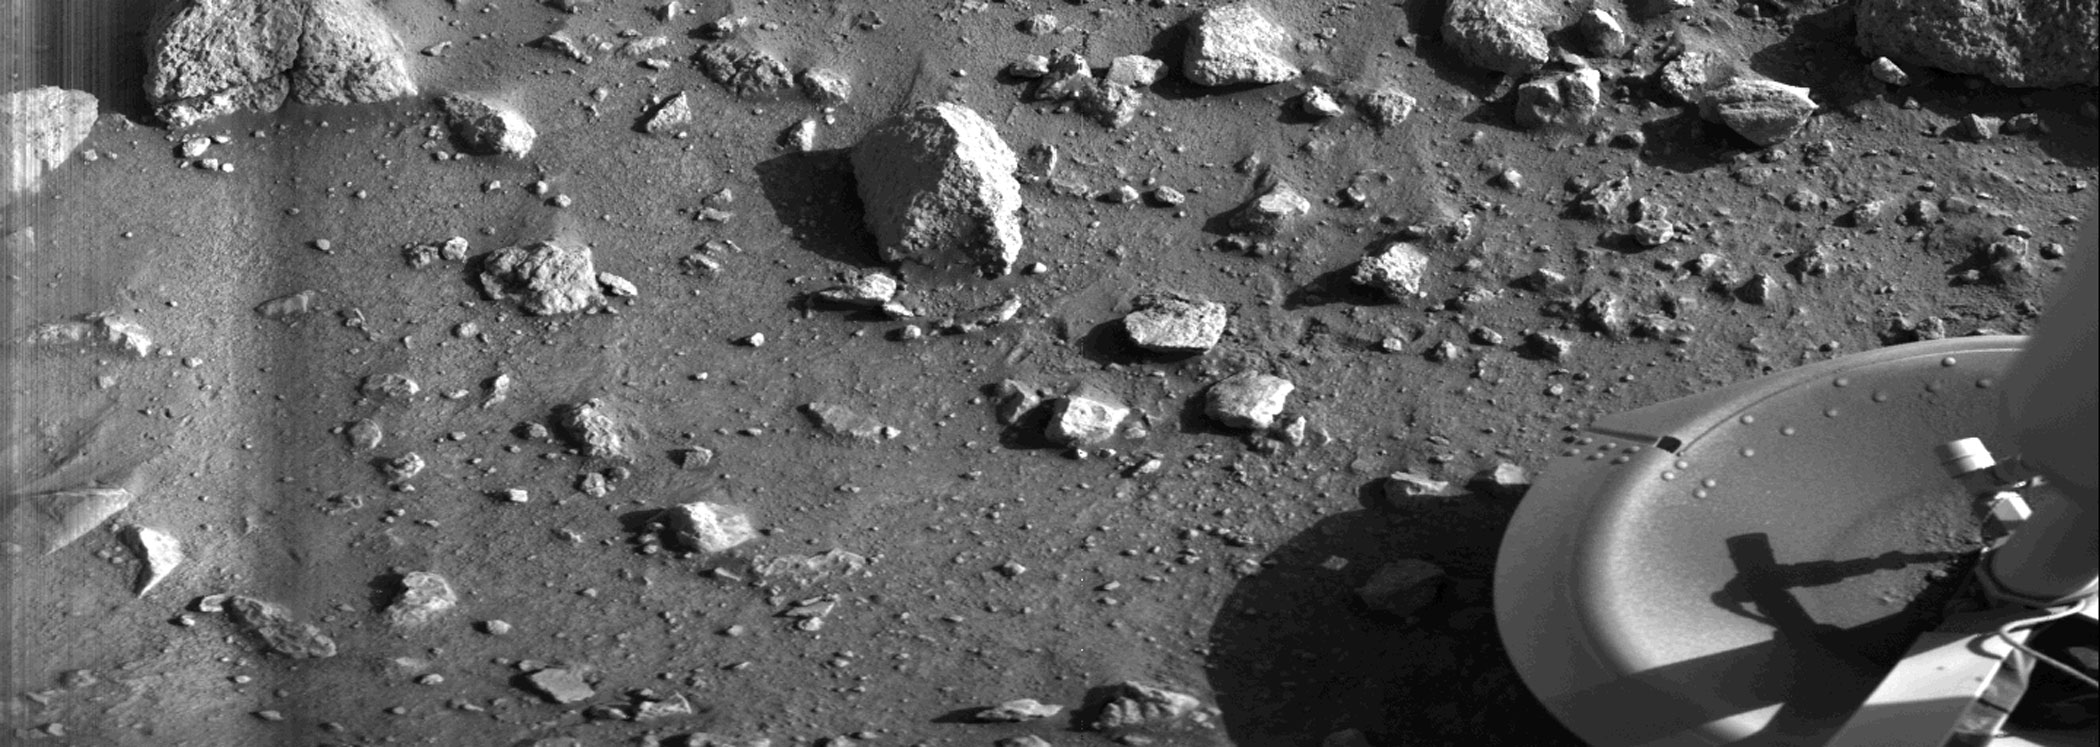 <b>The Surface of Mars, 1976</b>;  This is the first photograph ever taken on the surface of the planet Mars. It was obtained by Viking 1 just minutes after the spacecraft landed successfully on July 20, 1976.